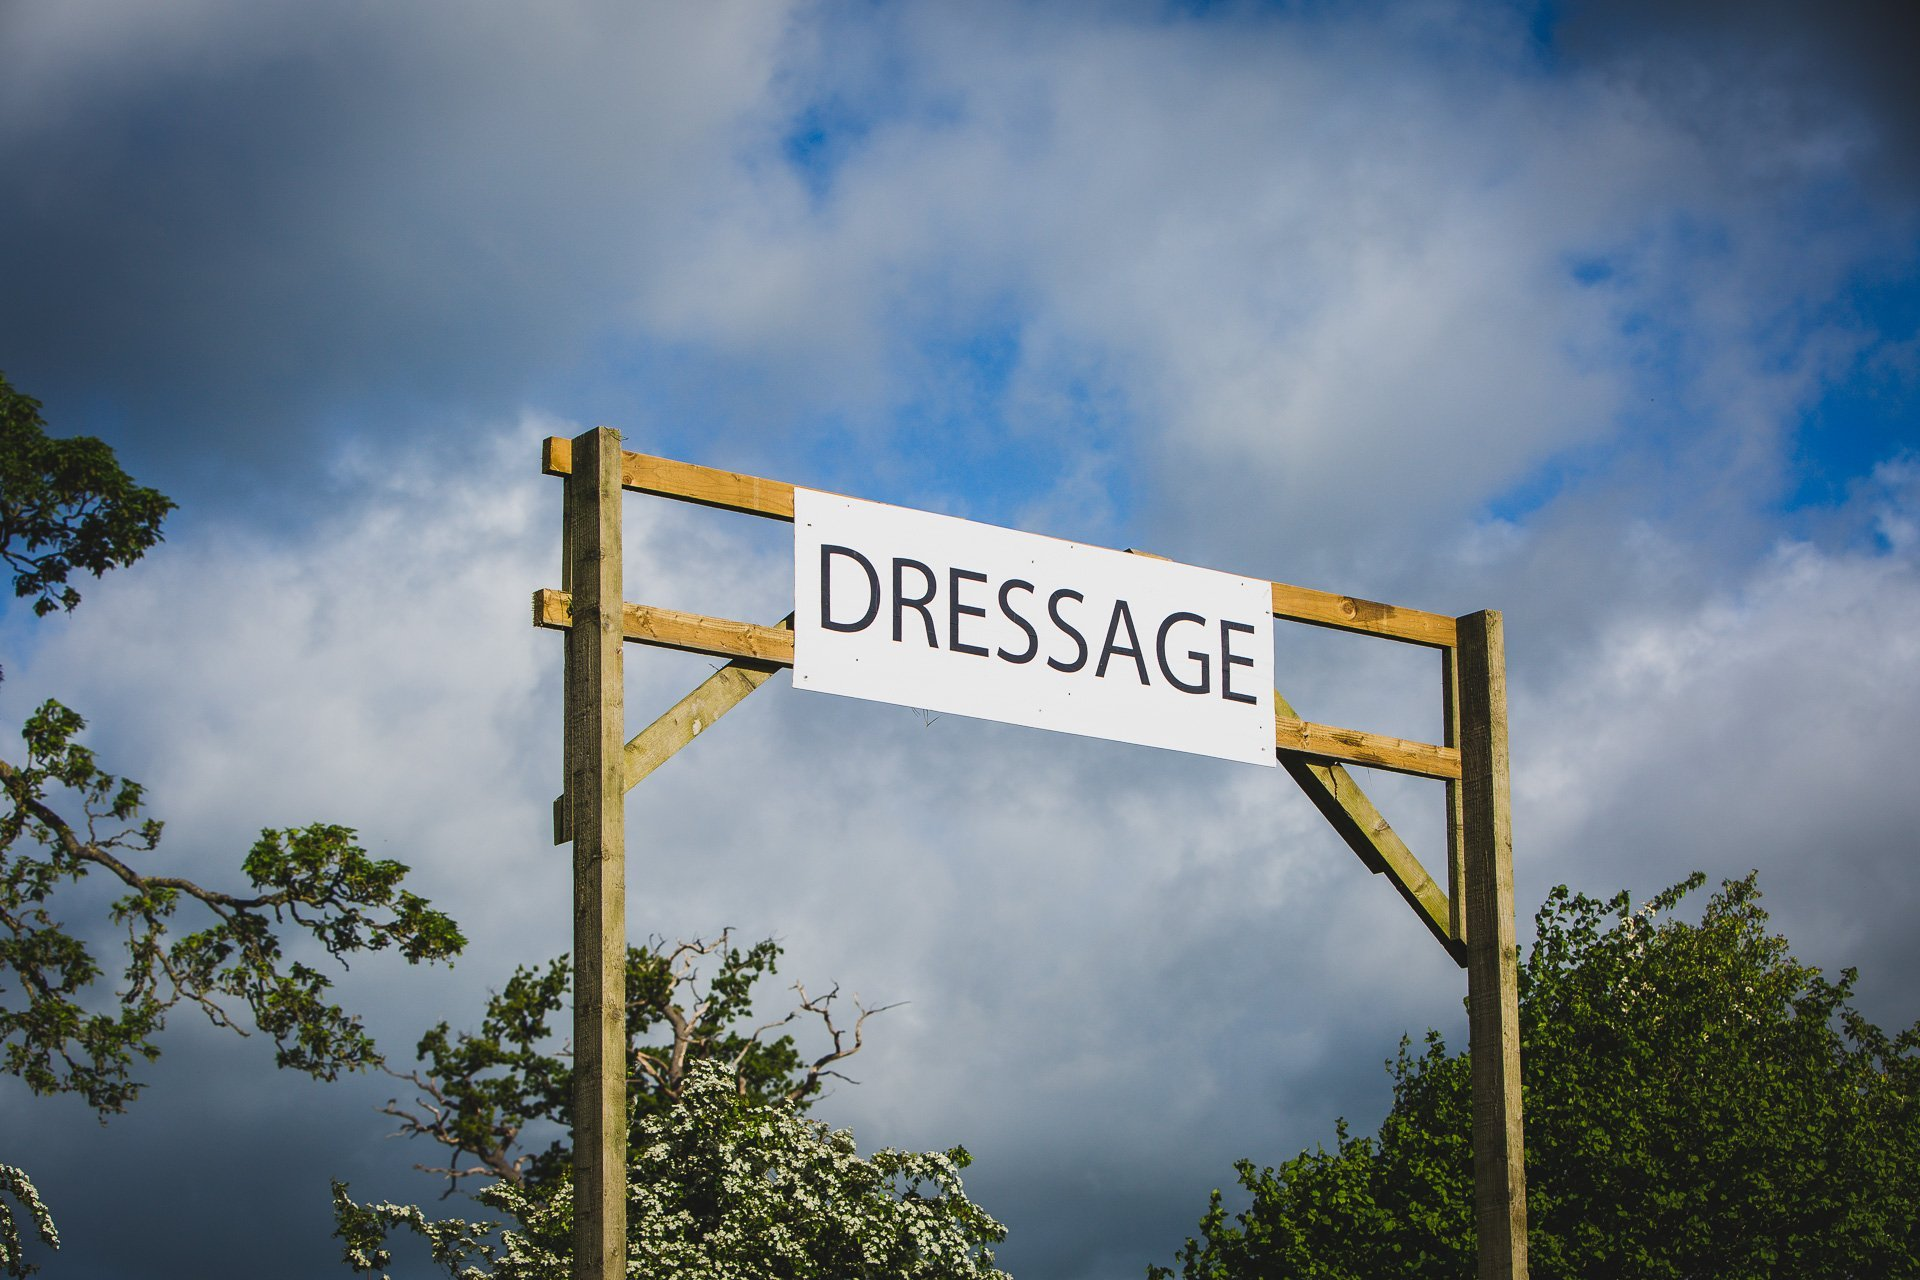 dressage at Llanymynech horse trials